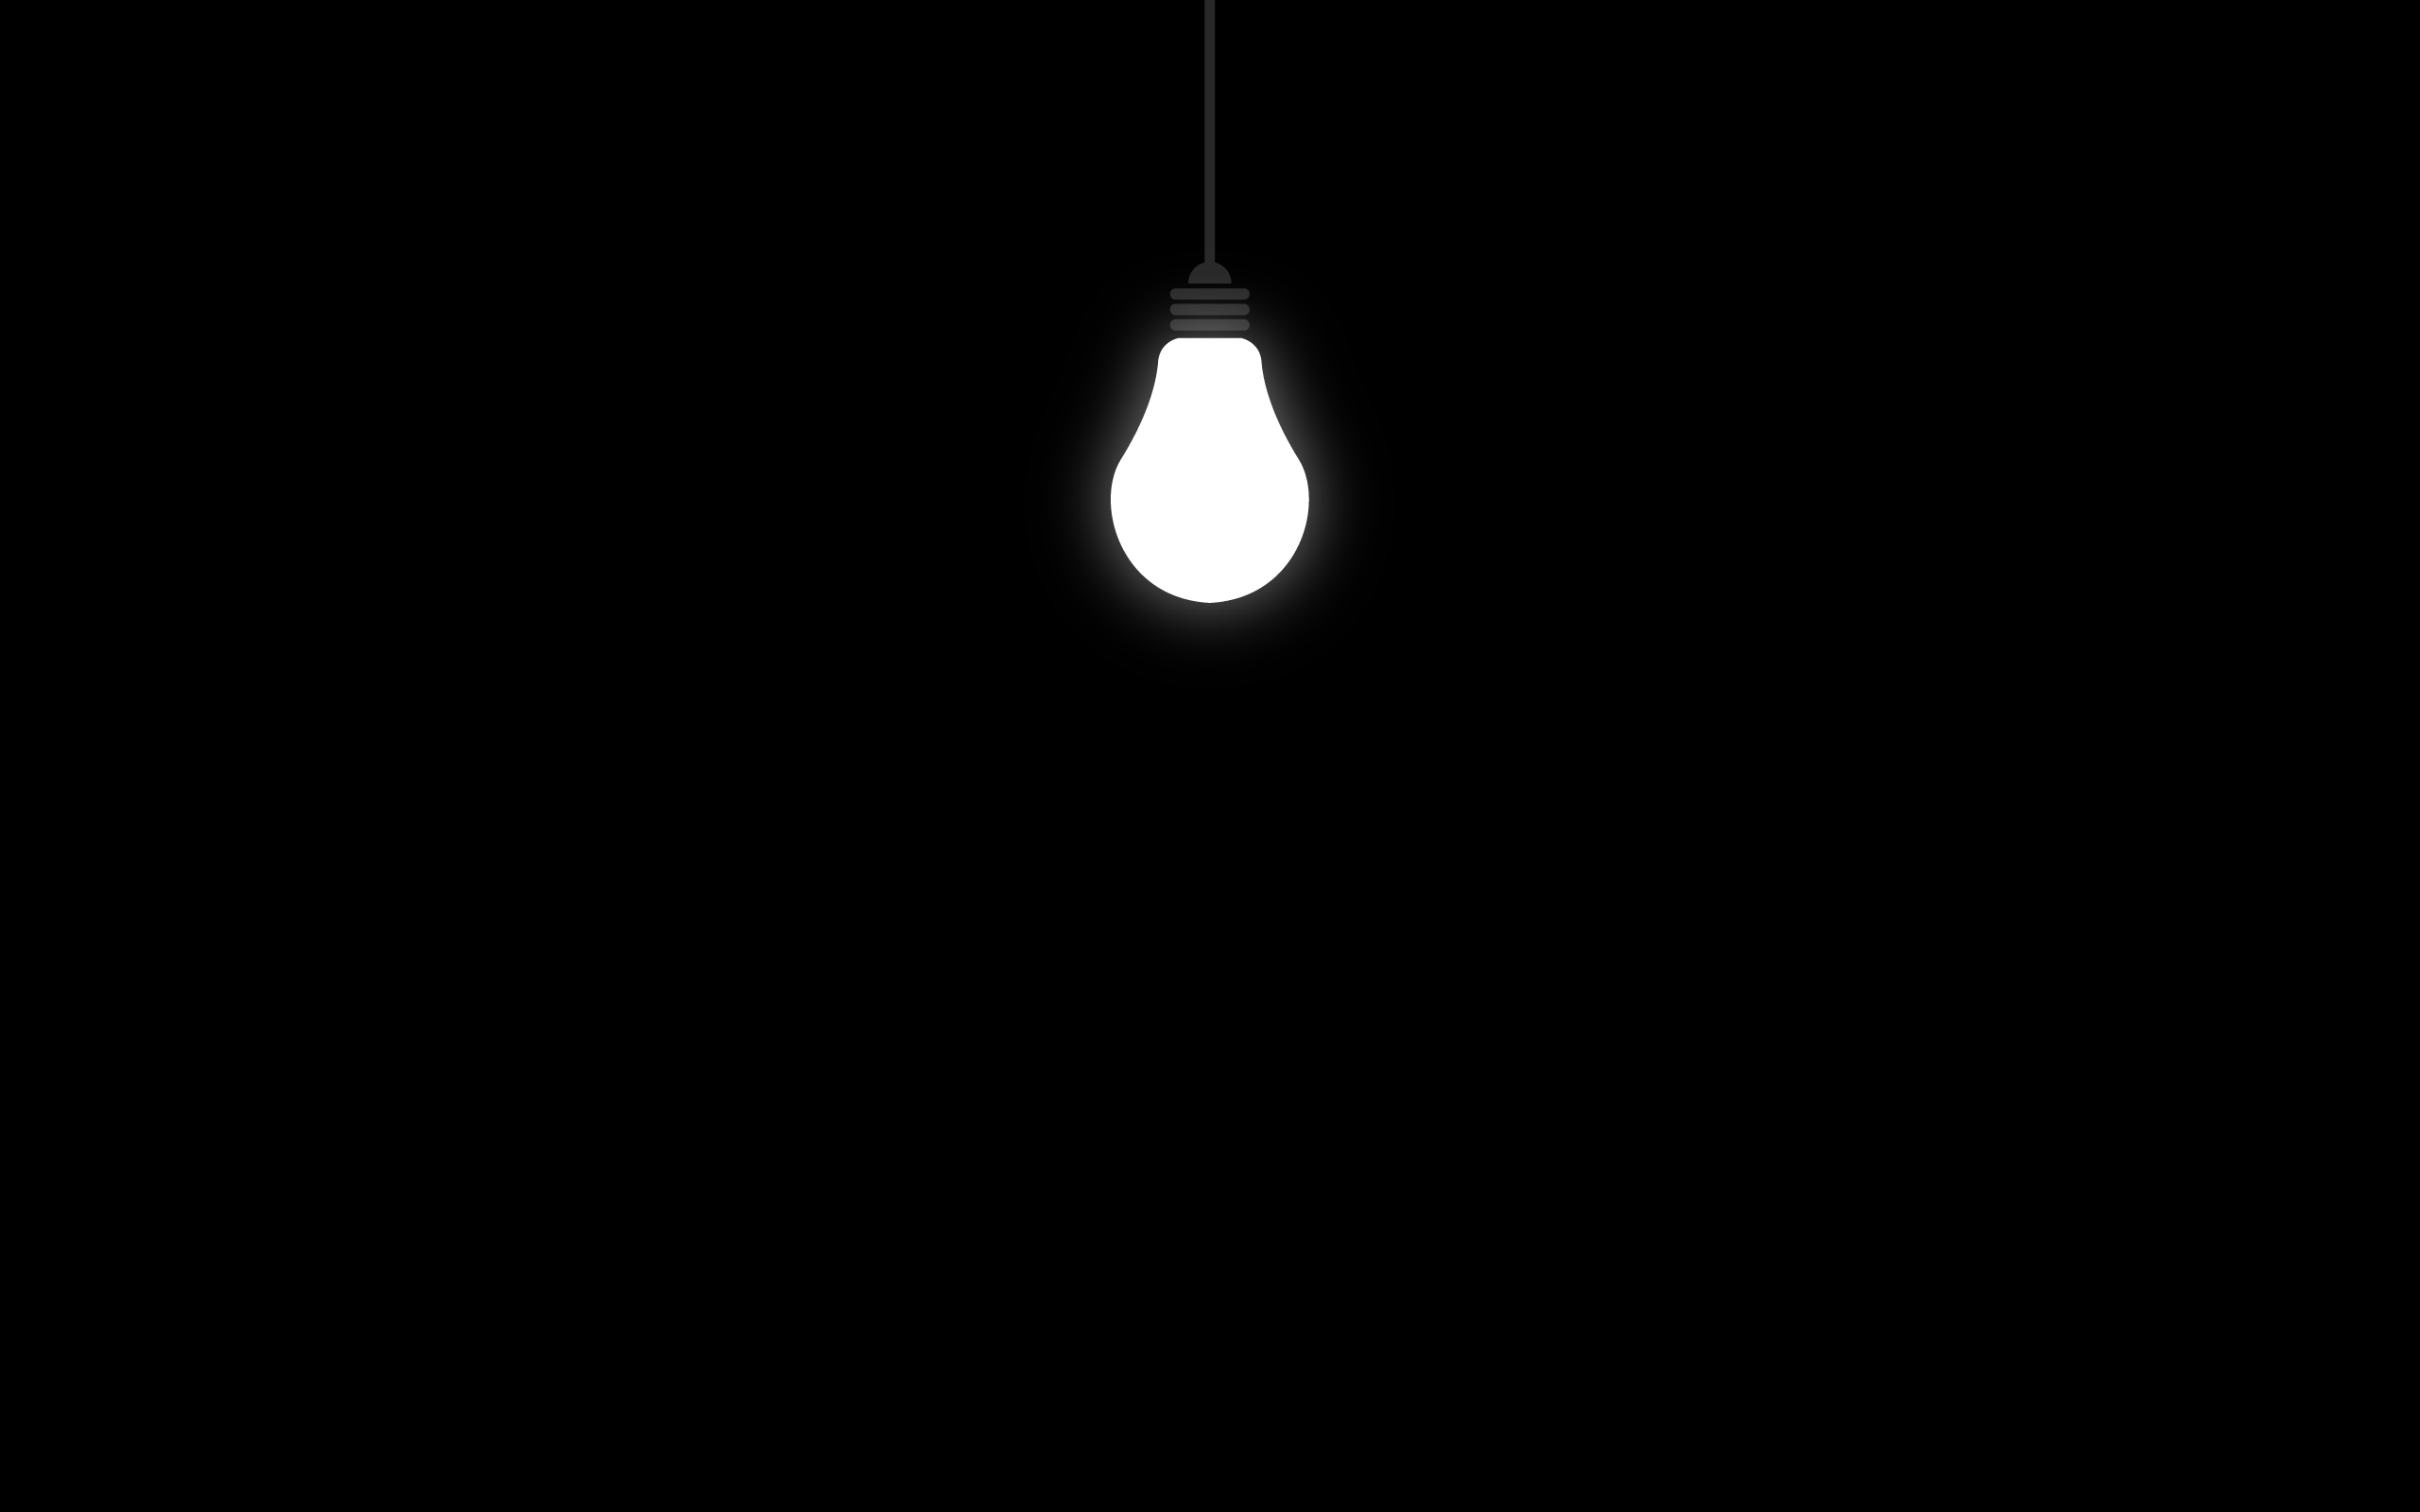 Simple Black And White Wallpapers Top Free Simple Black And White Backgrounds Wallpaperaccess